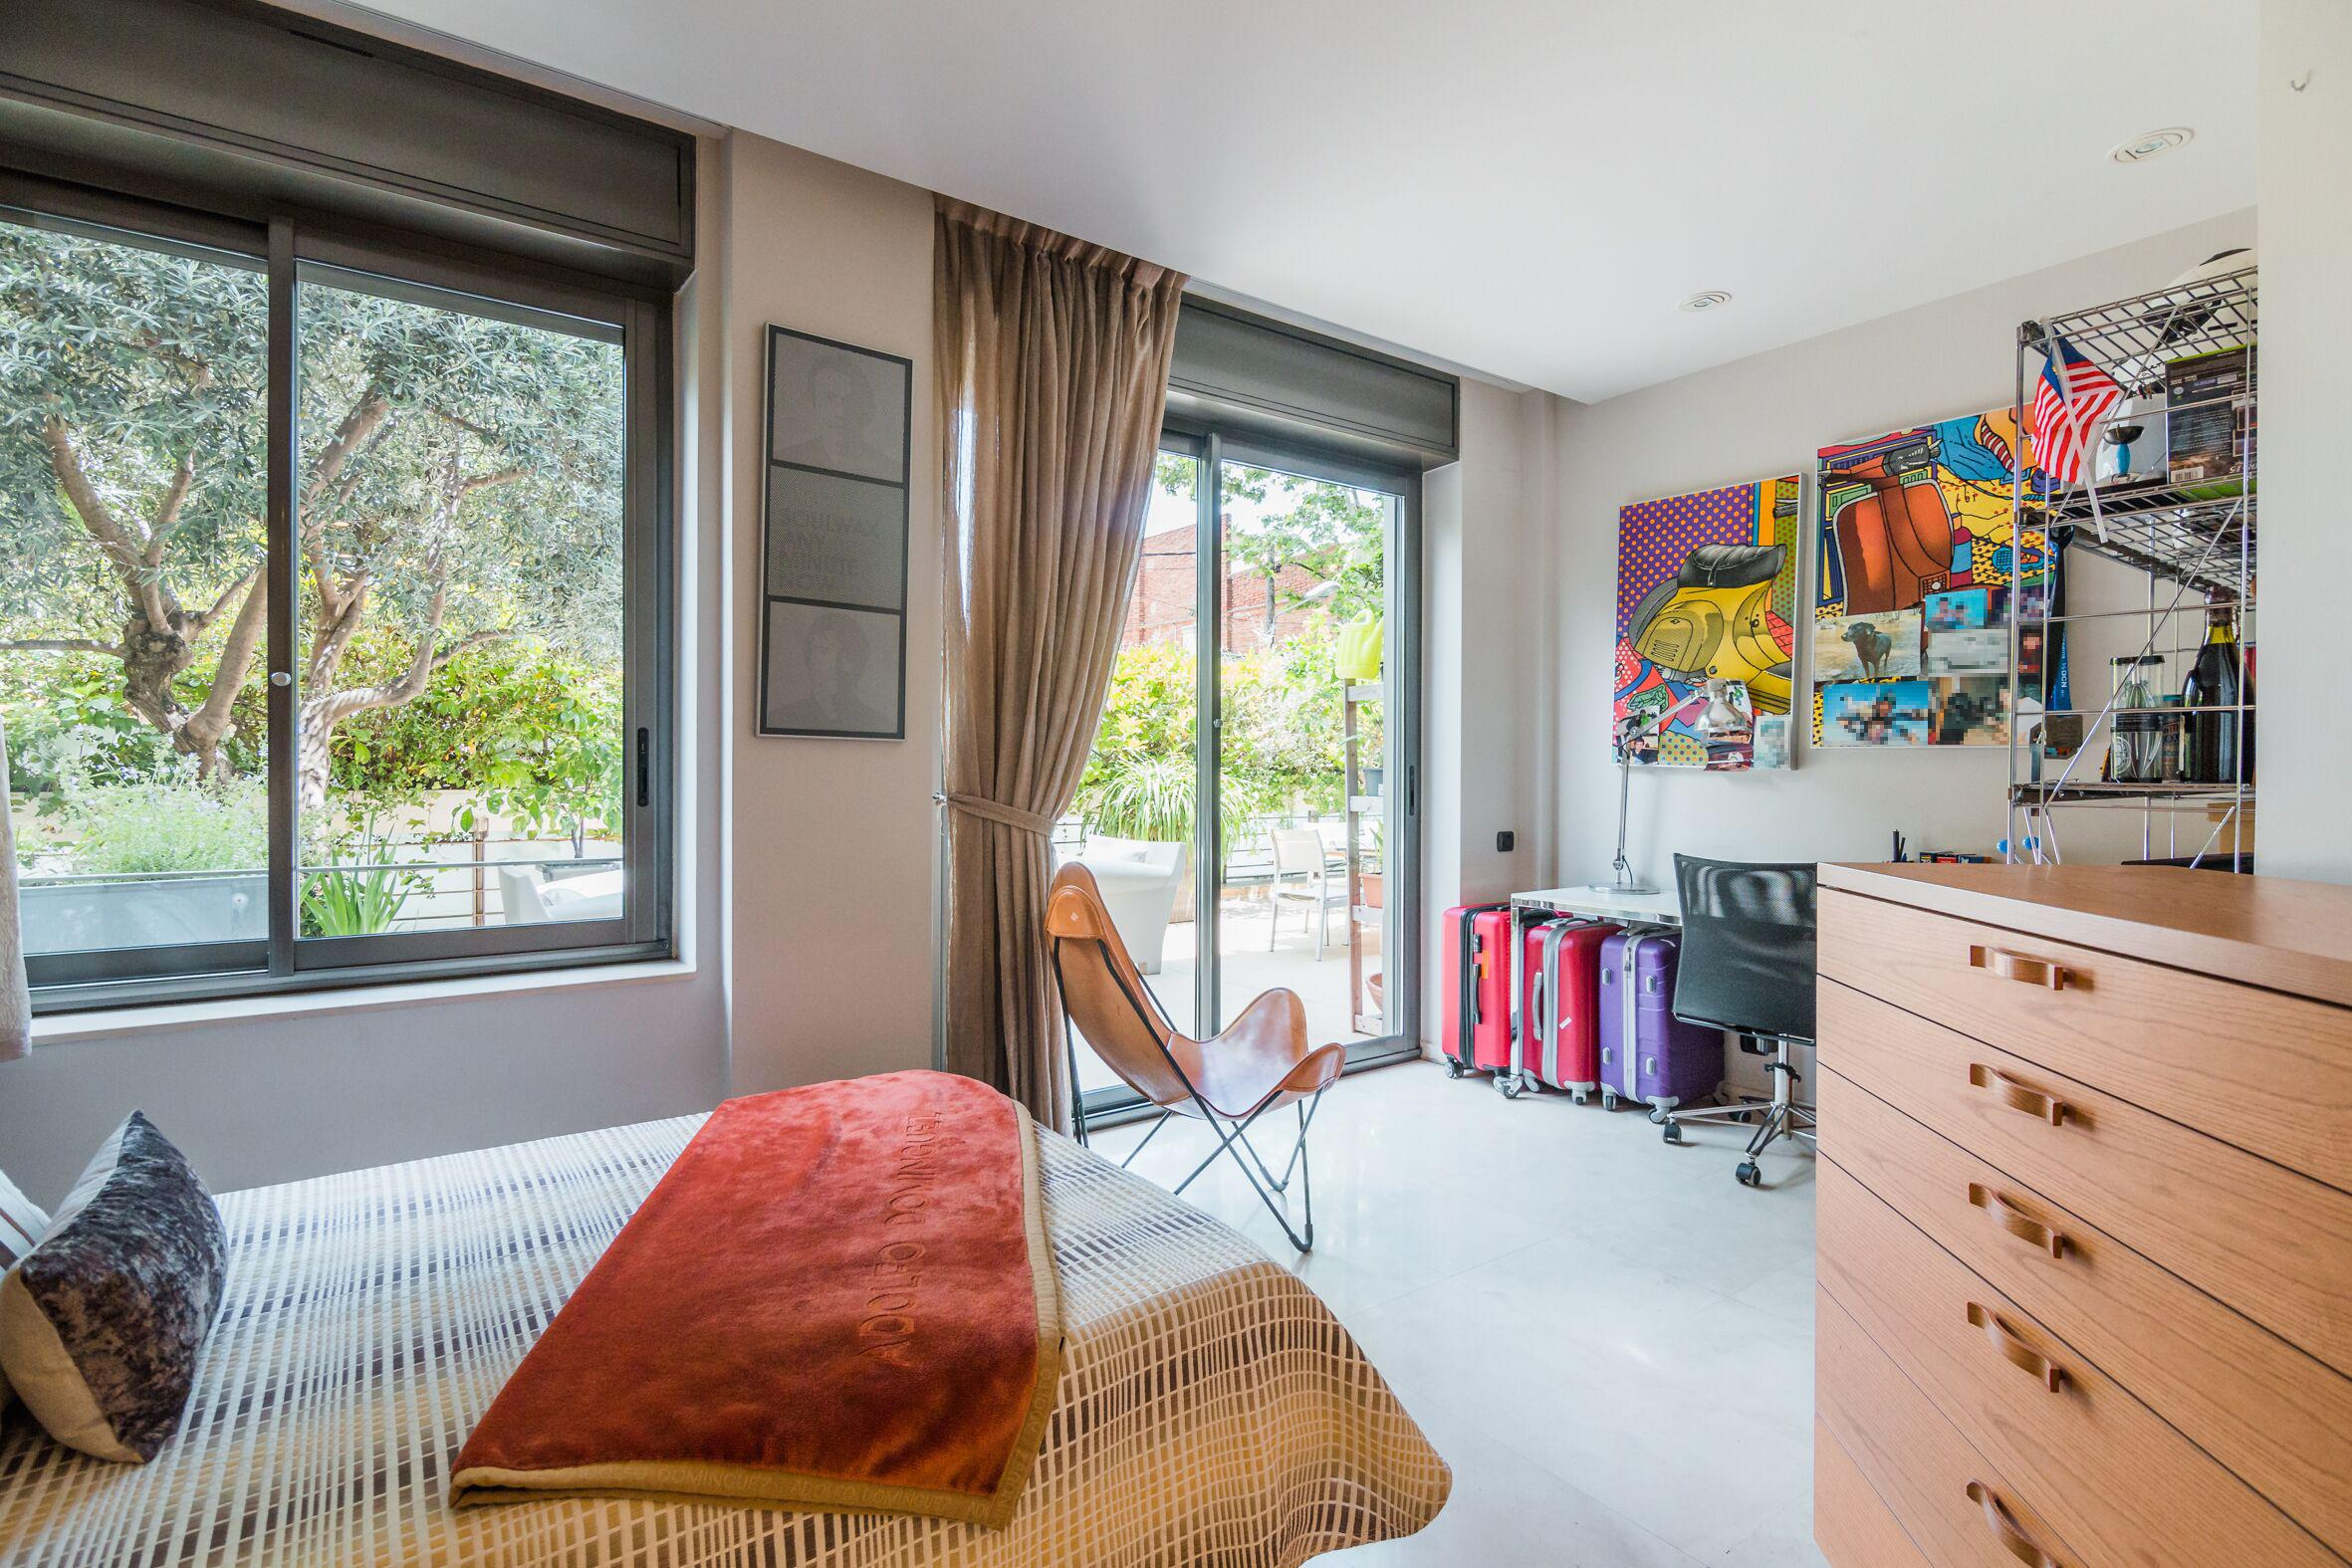 208150 Apartment for sale in Gràcia, Vallcarca and Els Penitents 13